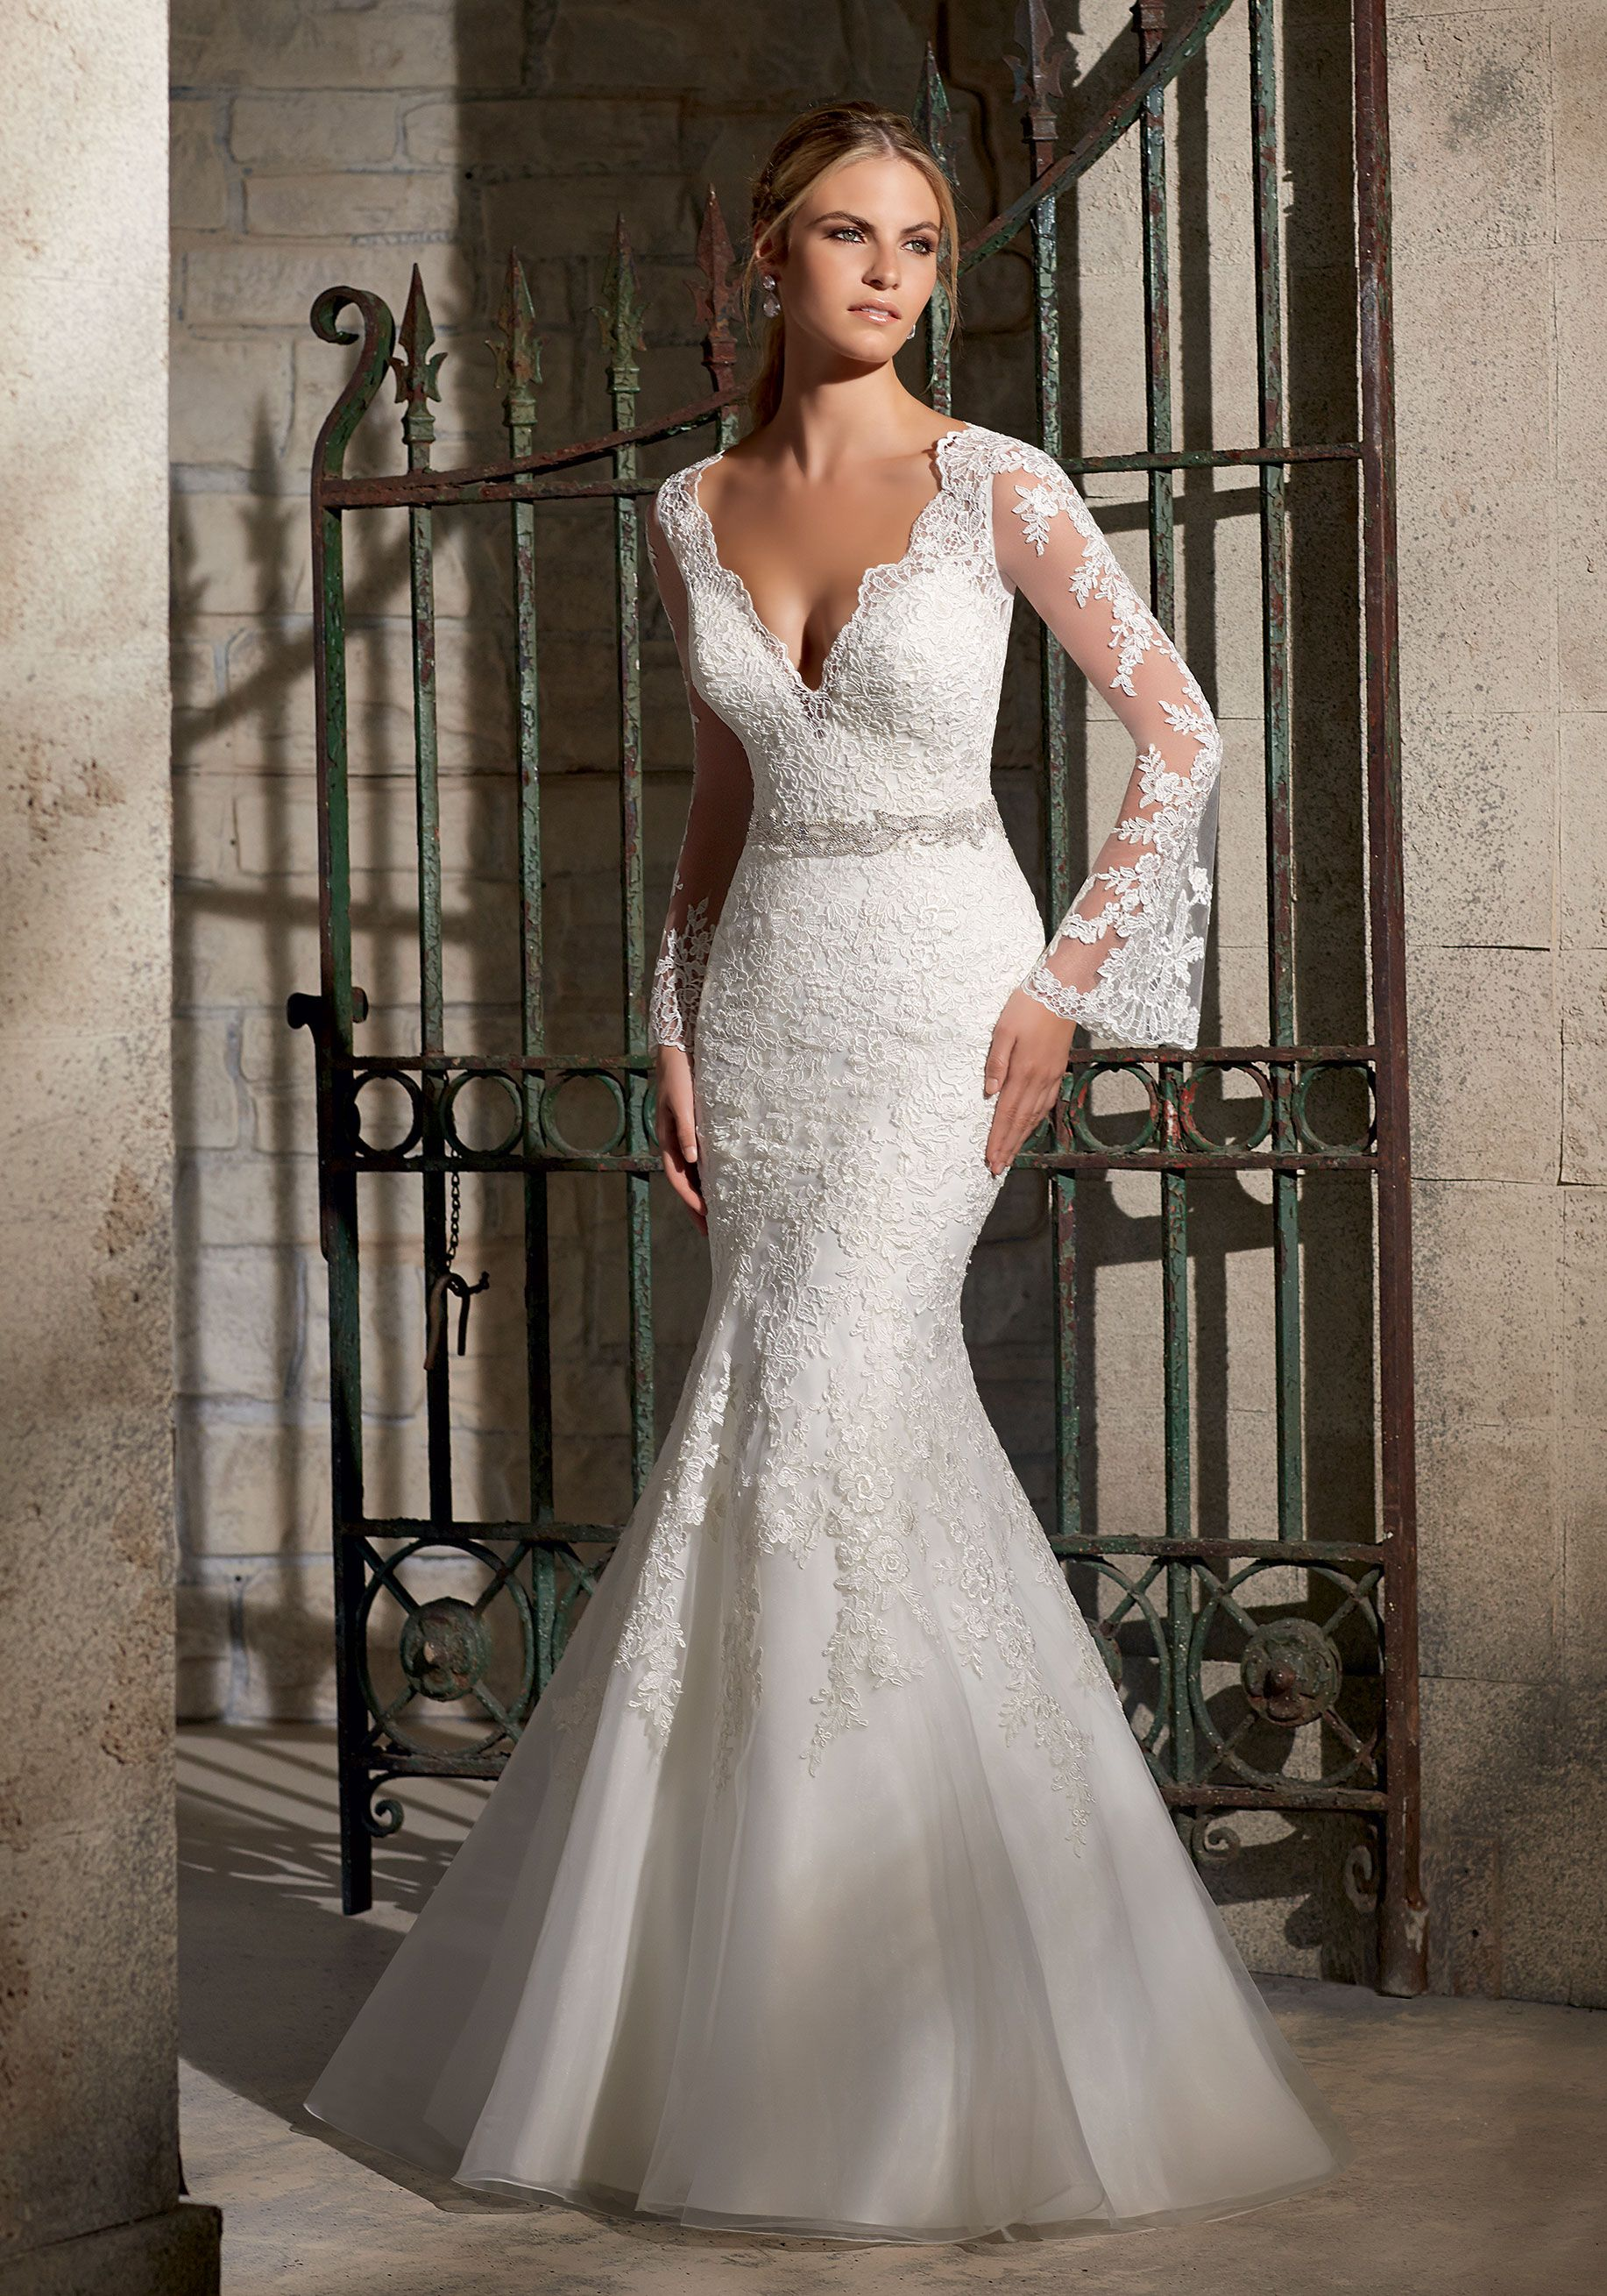 This Romantic Lace Fit And Flare Bridal Dress Features Long Bell Sleeves And Accented With Diamante Bea Mori Lee Wedding Dress Wedding Dresses Bridal Dresses